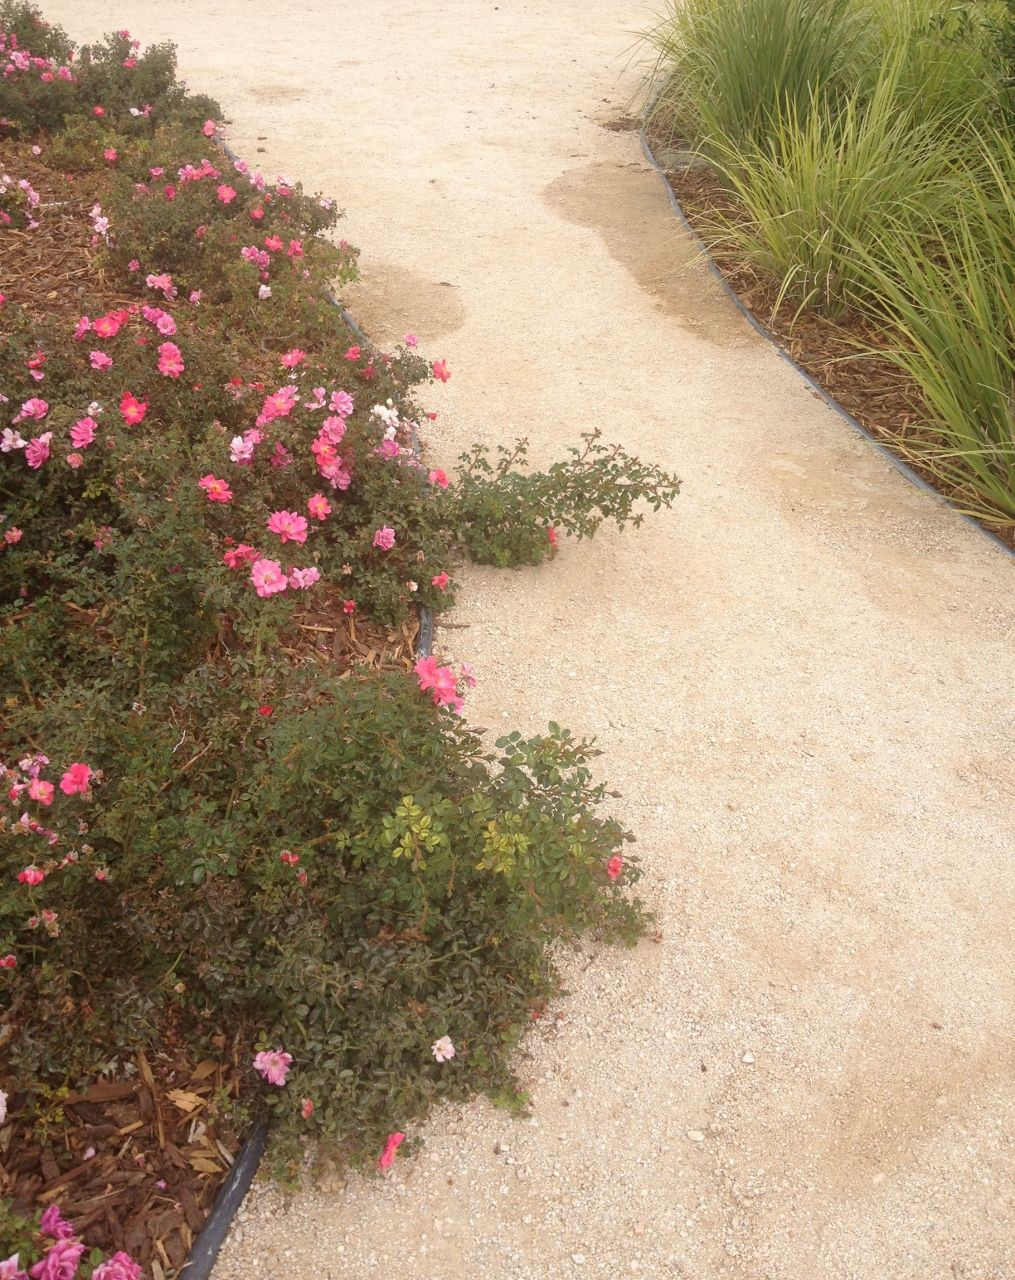 Decomposed Granite Pathways Are Easy And Affordable Shown Here With Groundcover Roses Bunch Gres